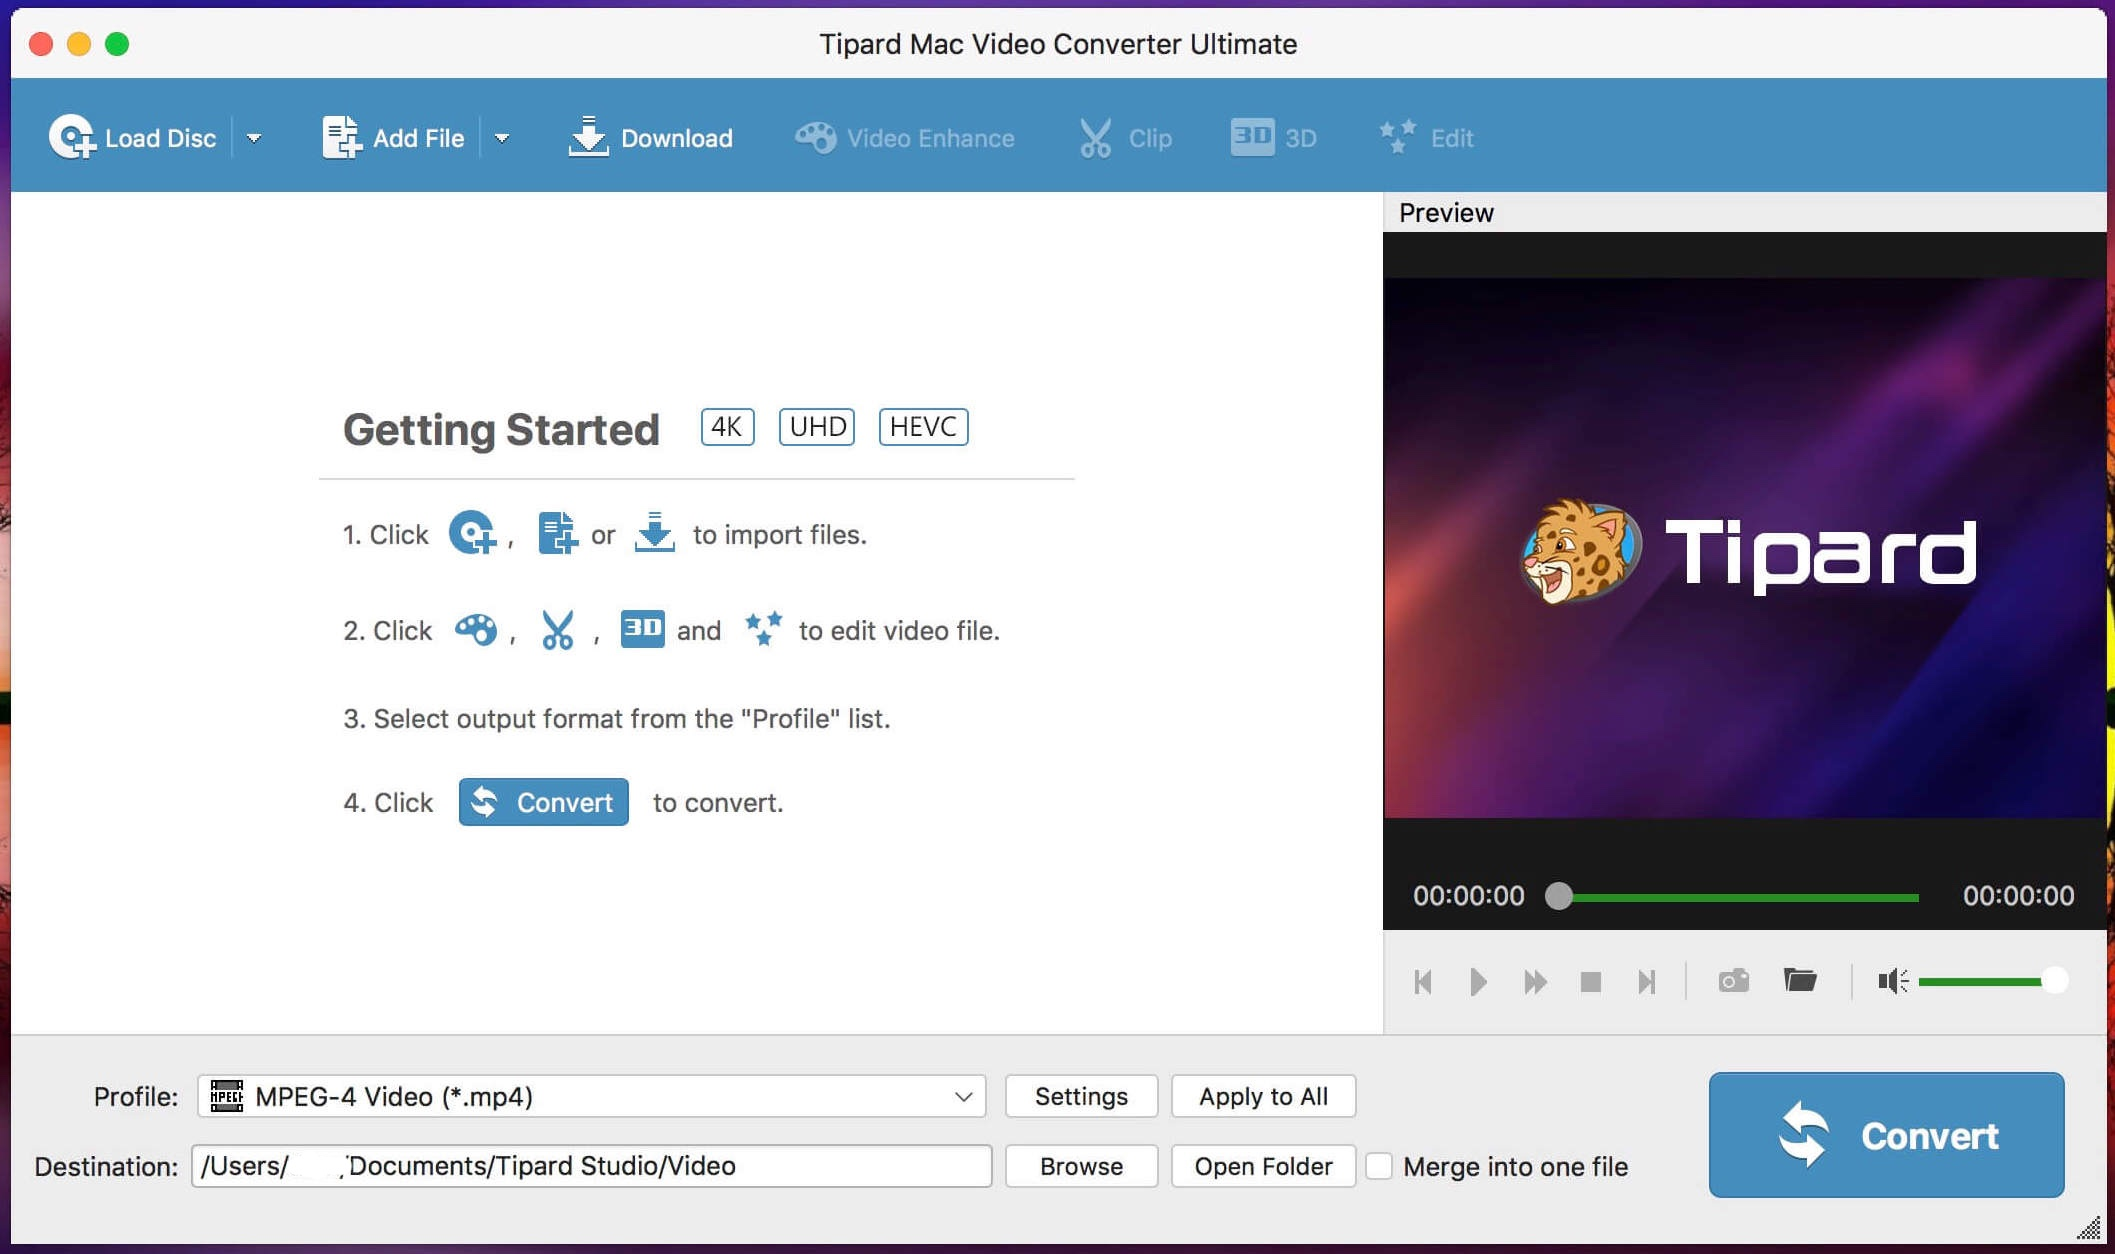 Tipard Mac Video Converter Ultimate 9.2.26 - Mac上的超强格式转换工具